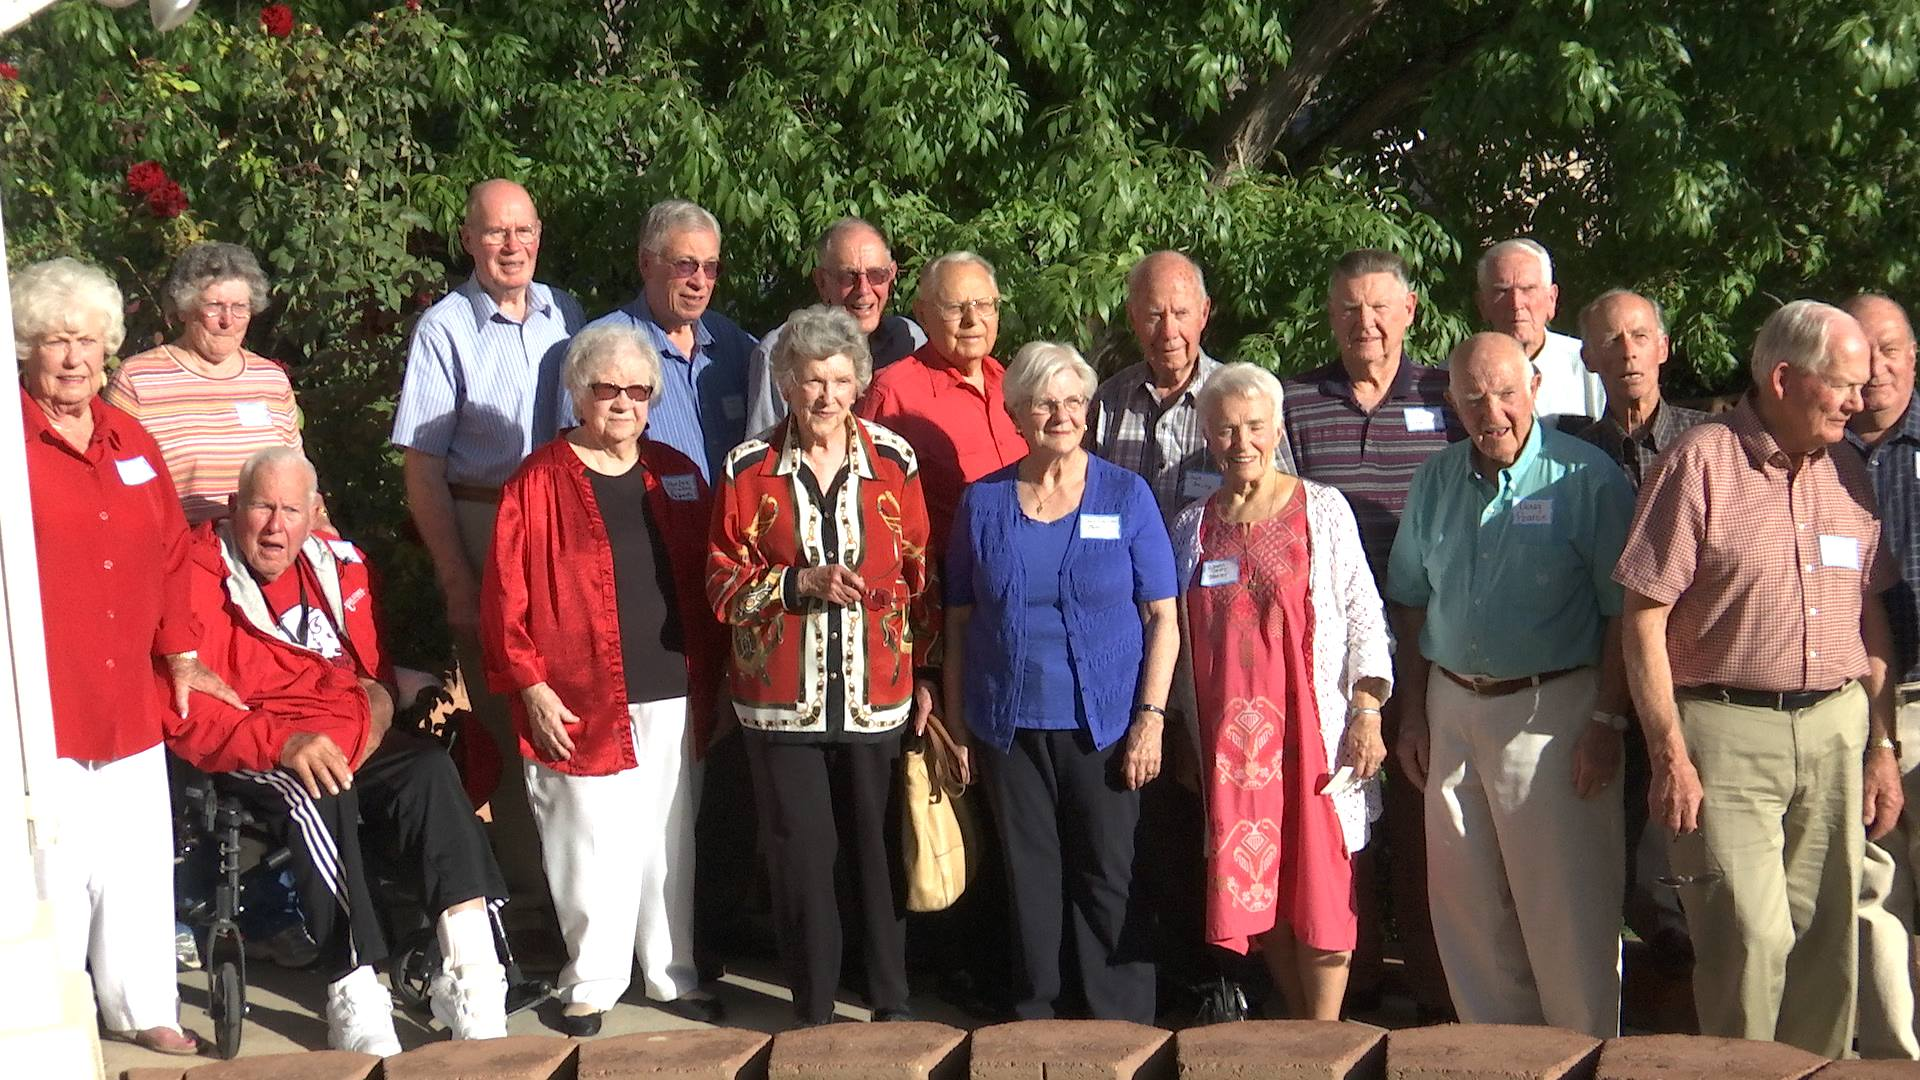 Alumni from Dixie High School and Dixie State University pose for a class picture at the Stephen and Maria Wade Alumni House, St. George, Utah, Oct. 22, 2016   Photo by Austin Peck, St. George News